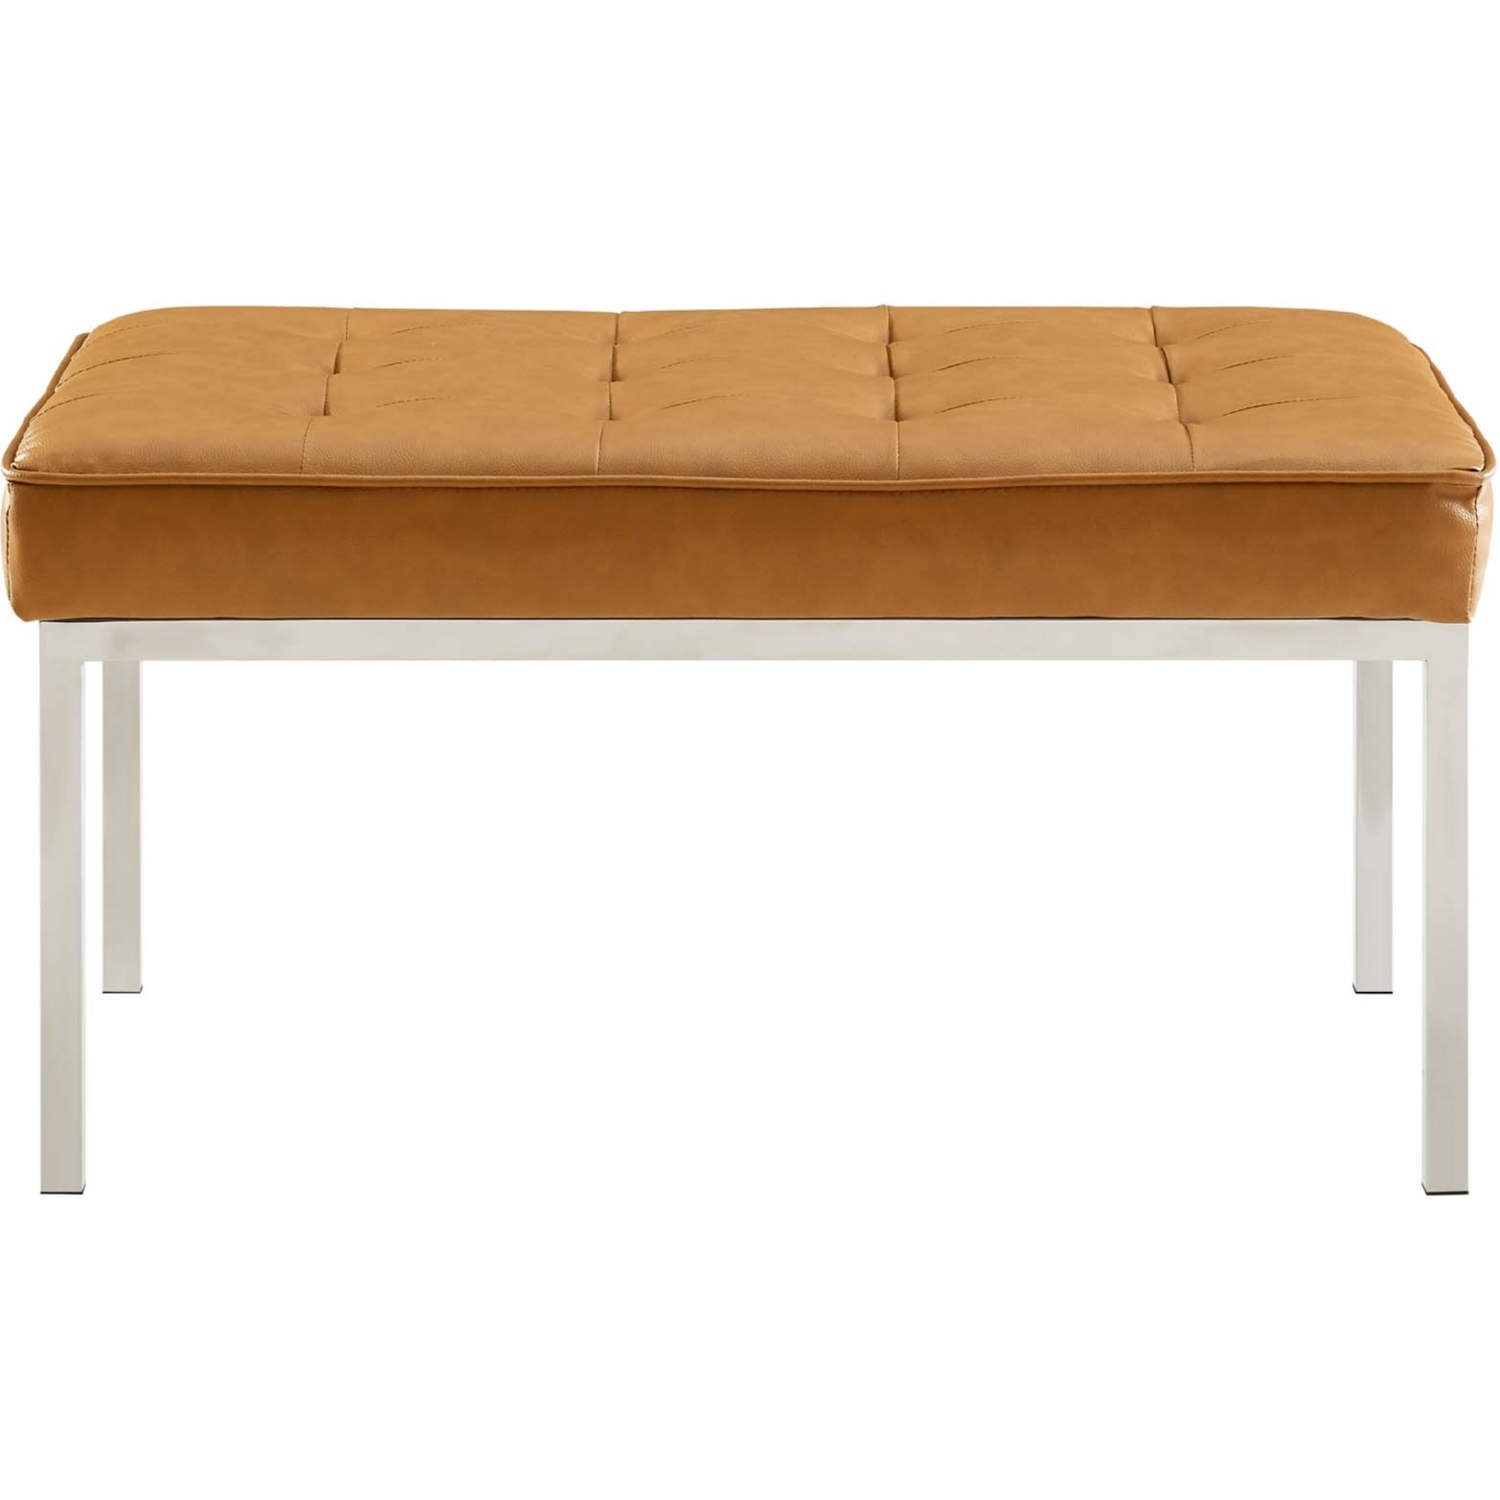 Bench In Tan Faux Leather W/ Silver Frame Finish - image-2